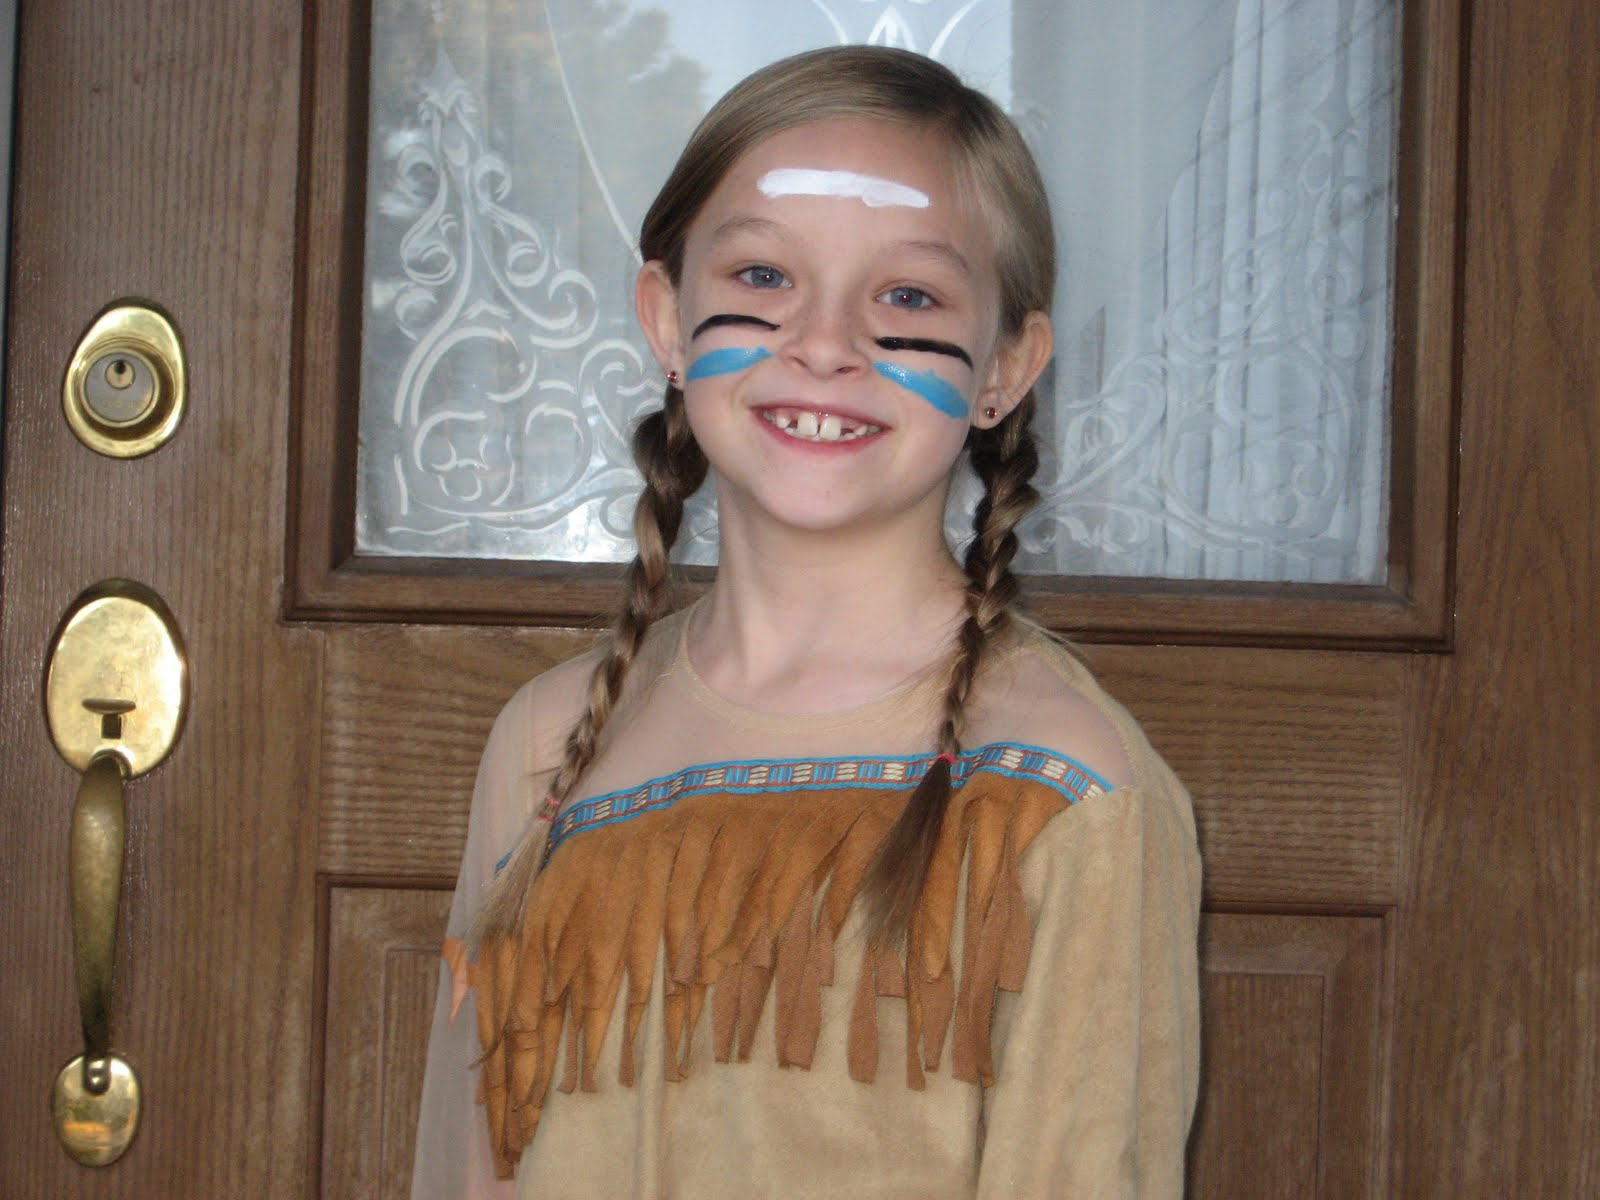 Native American Face Paint Female http://clapptribe.blogspot.com/2011_11_01_archive.html